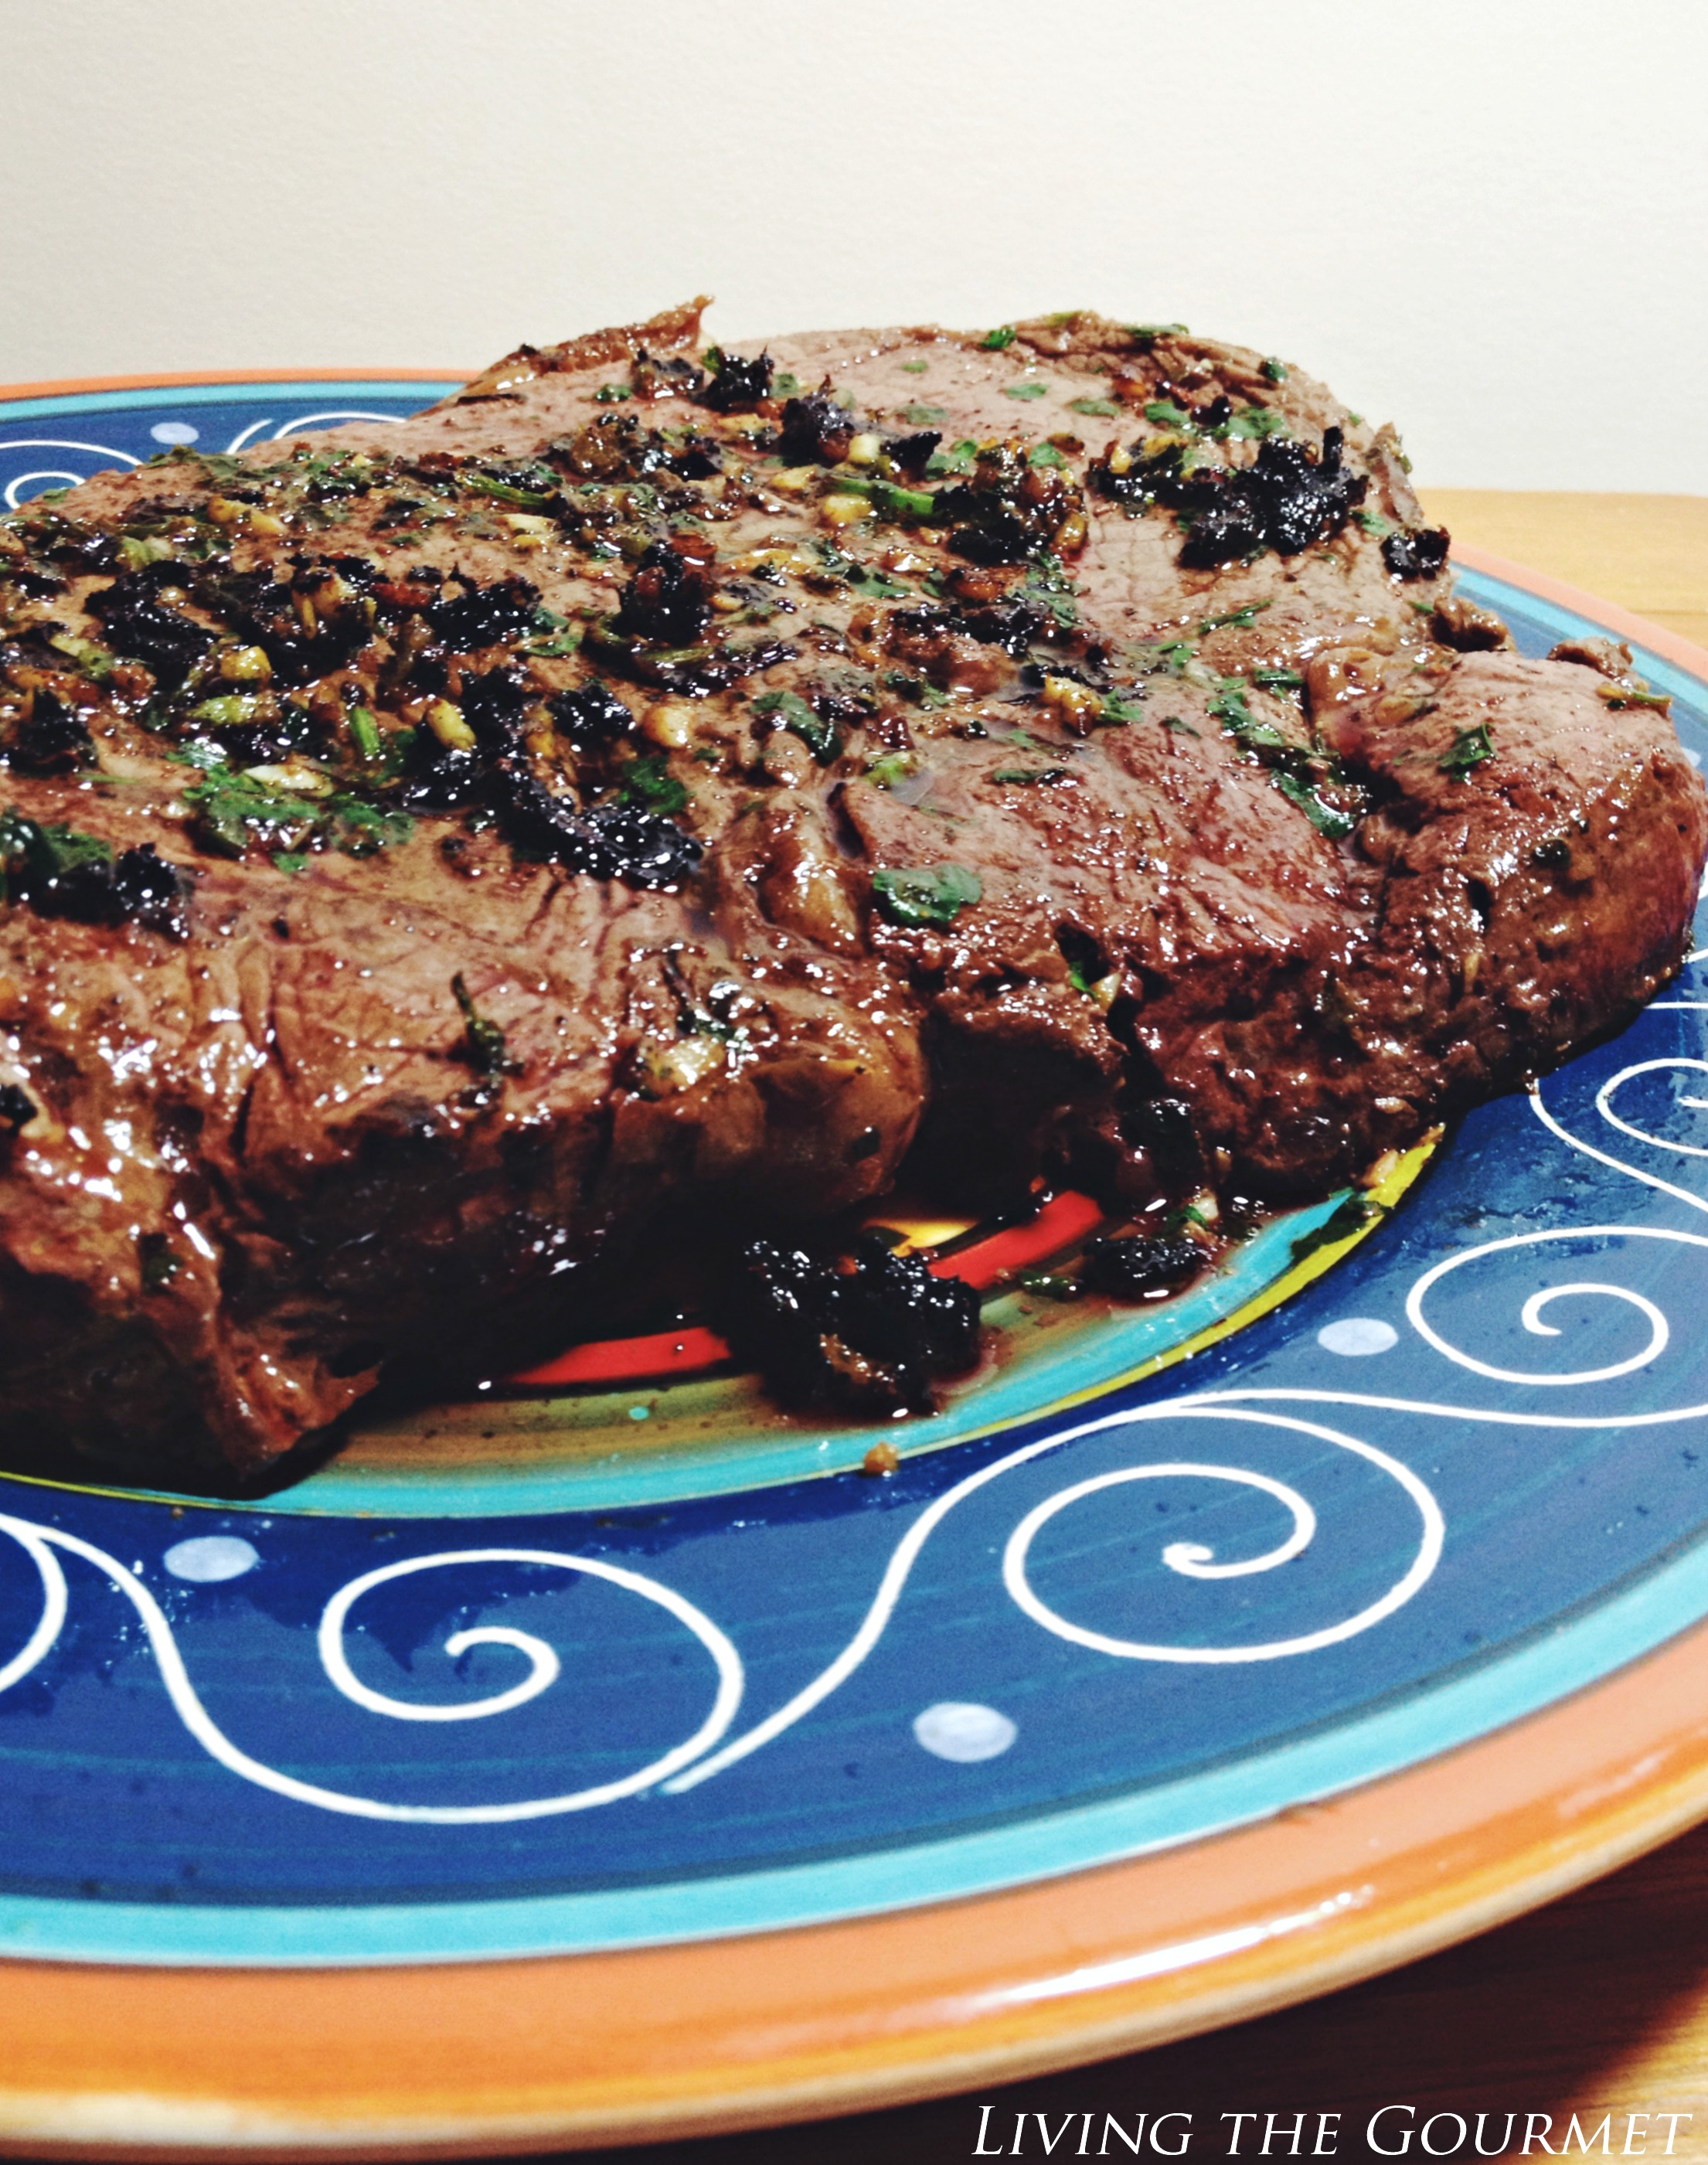 Living the Gourmet: Parsley Pesto Steak